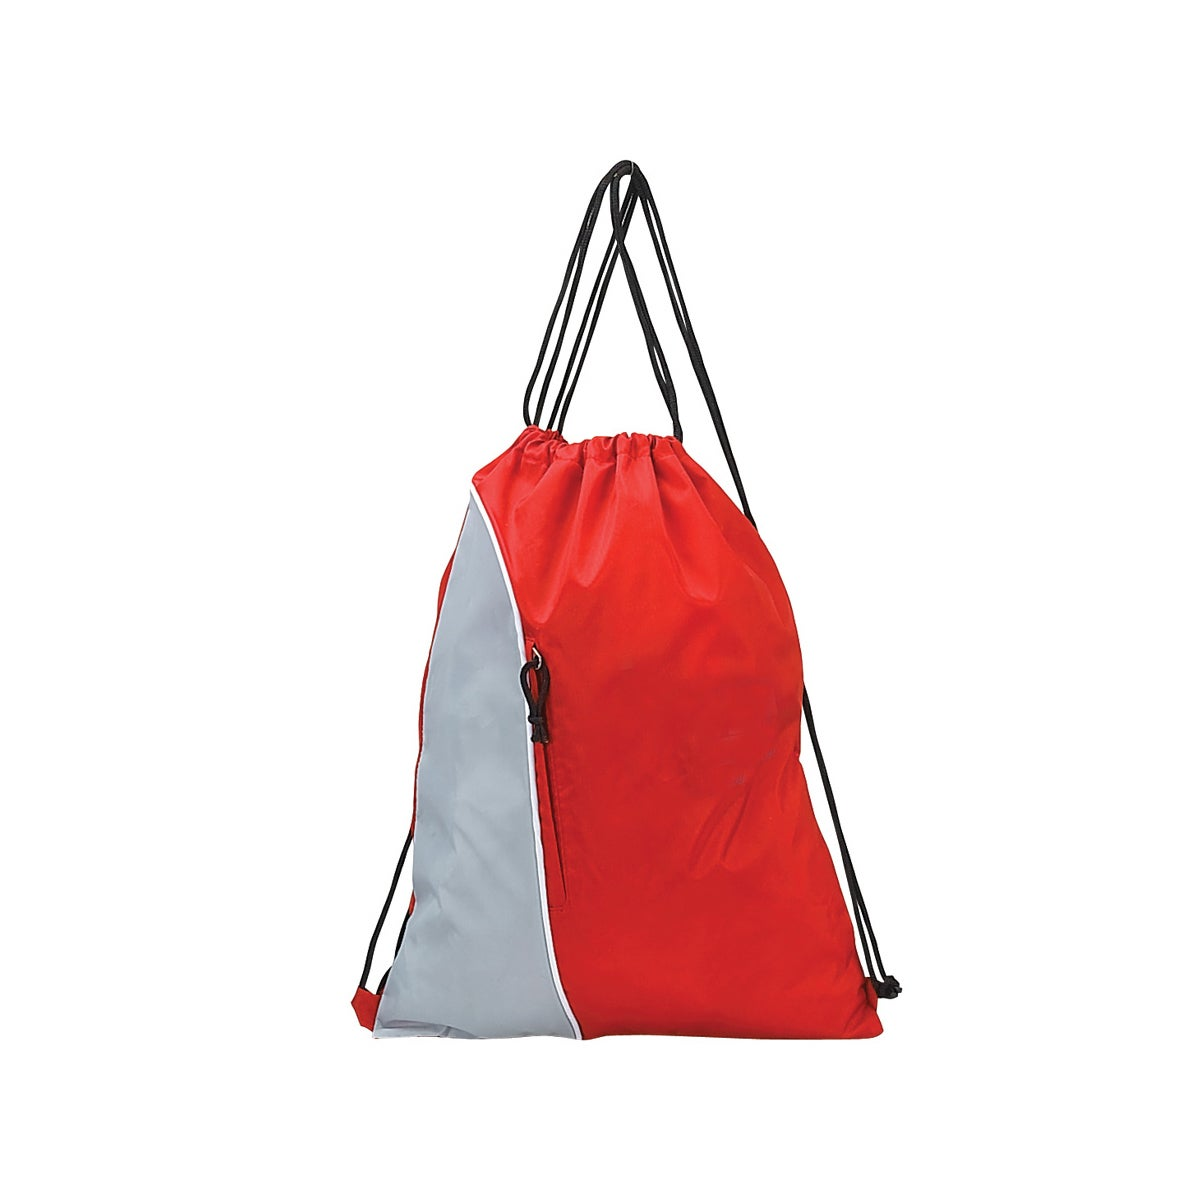 GOOD HOPE BAGS Multicolore Nylon Drawstring Pack (Red)